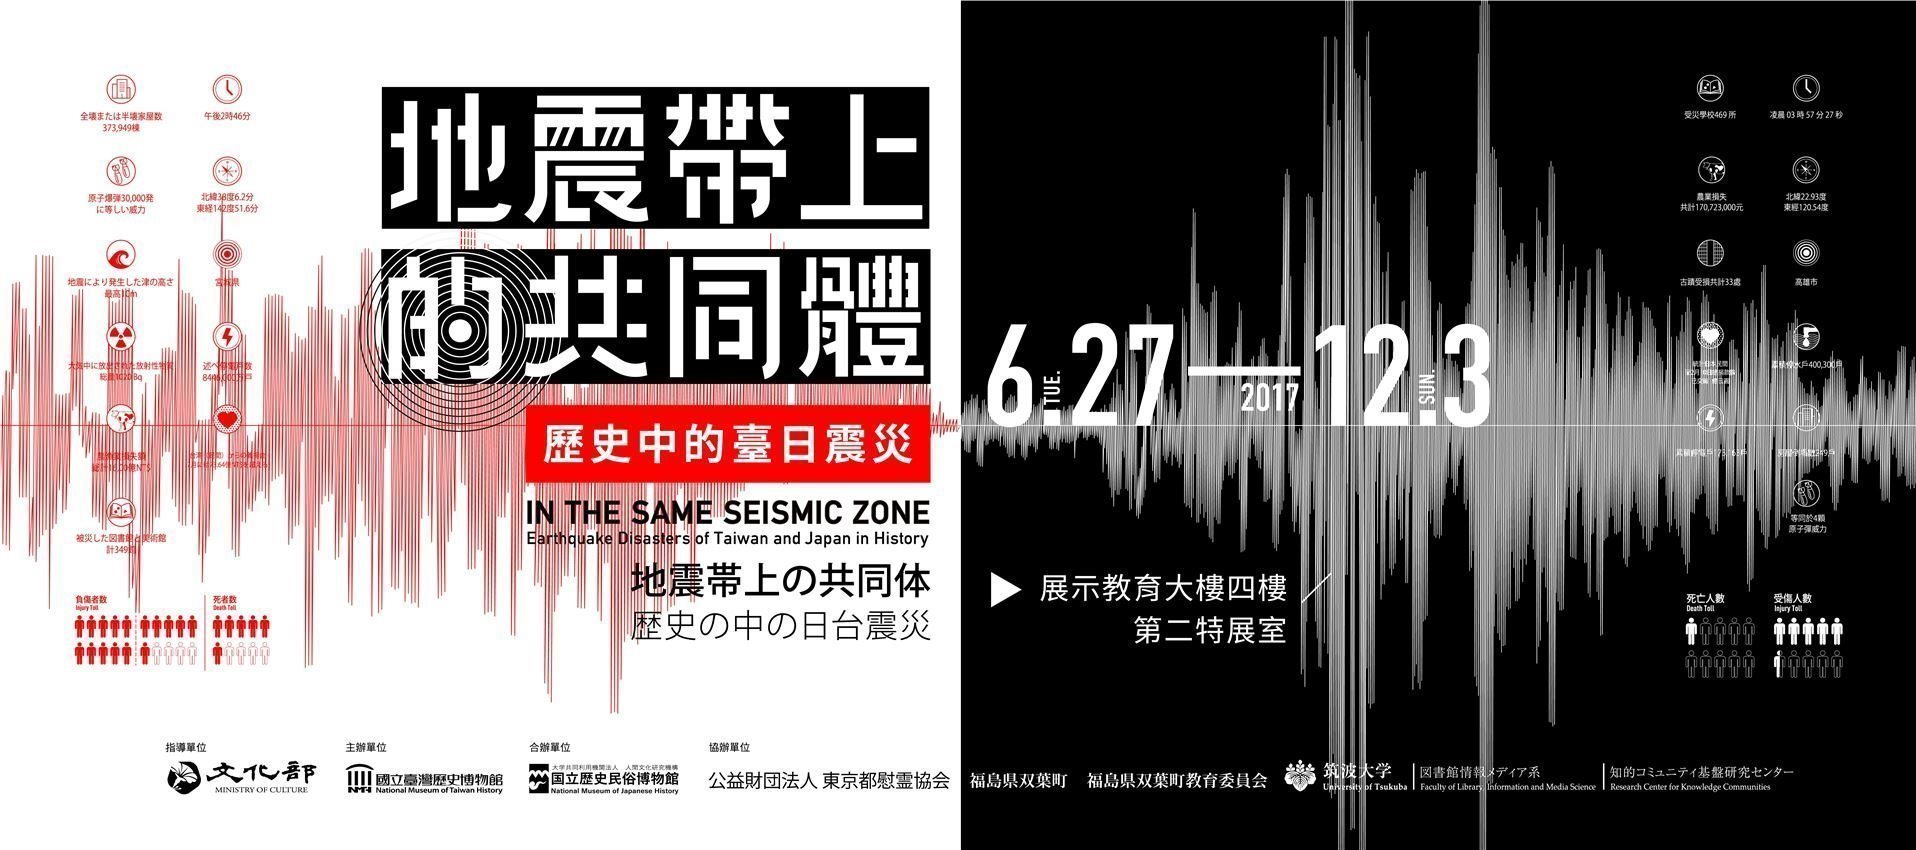 In the Same Seismic Zone:  Earthquake Disasters of Taiwan and Japan in History